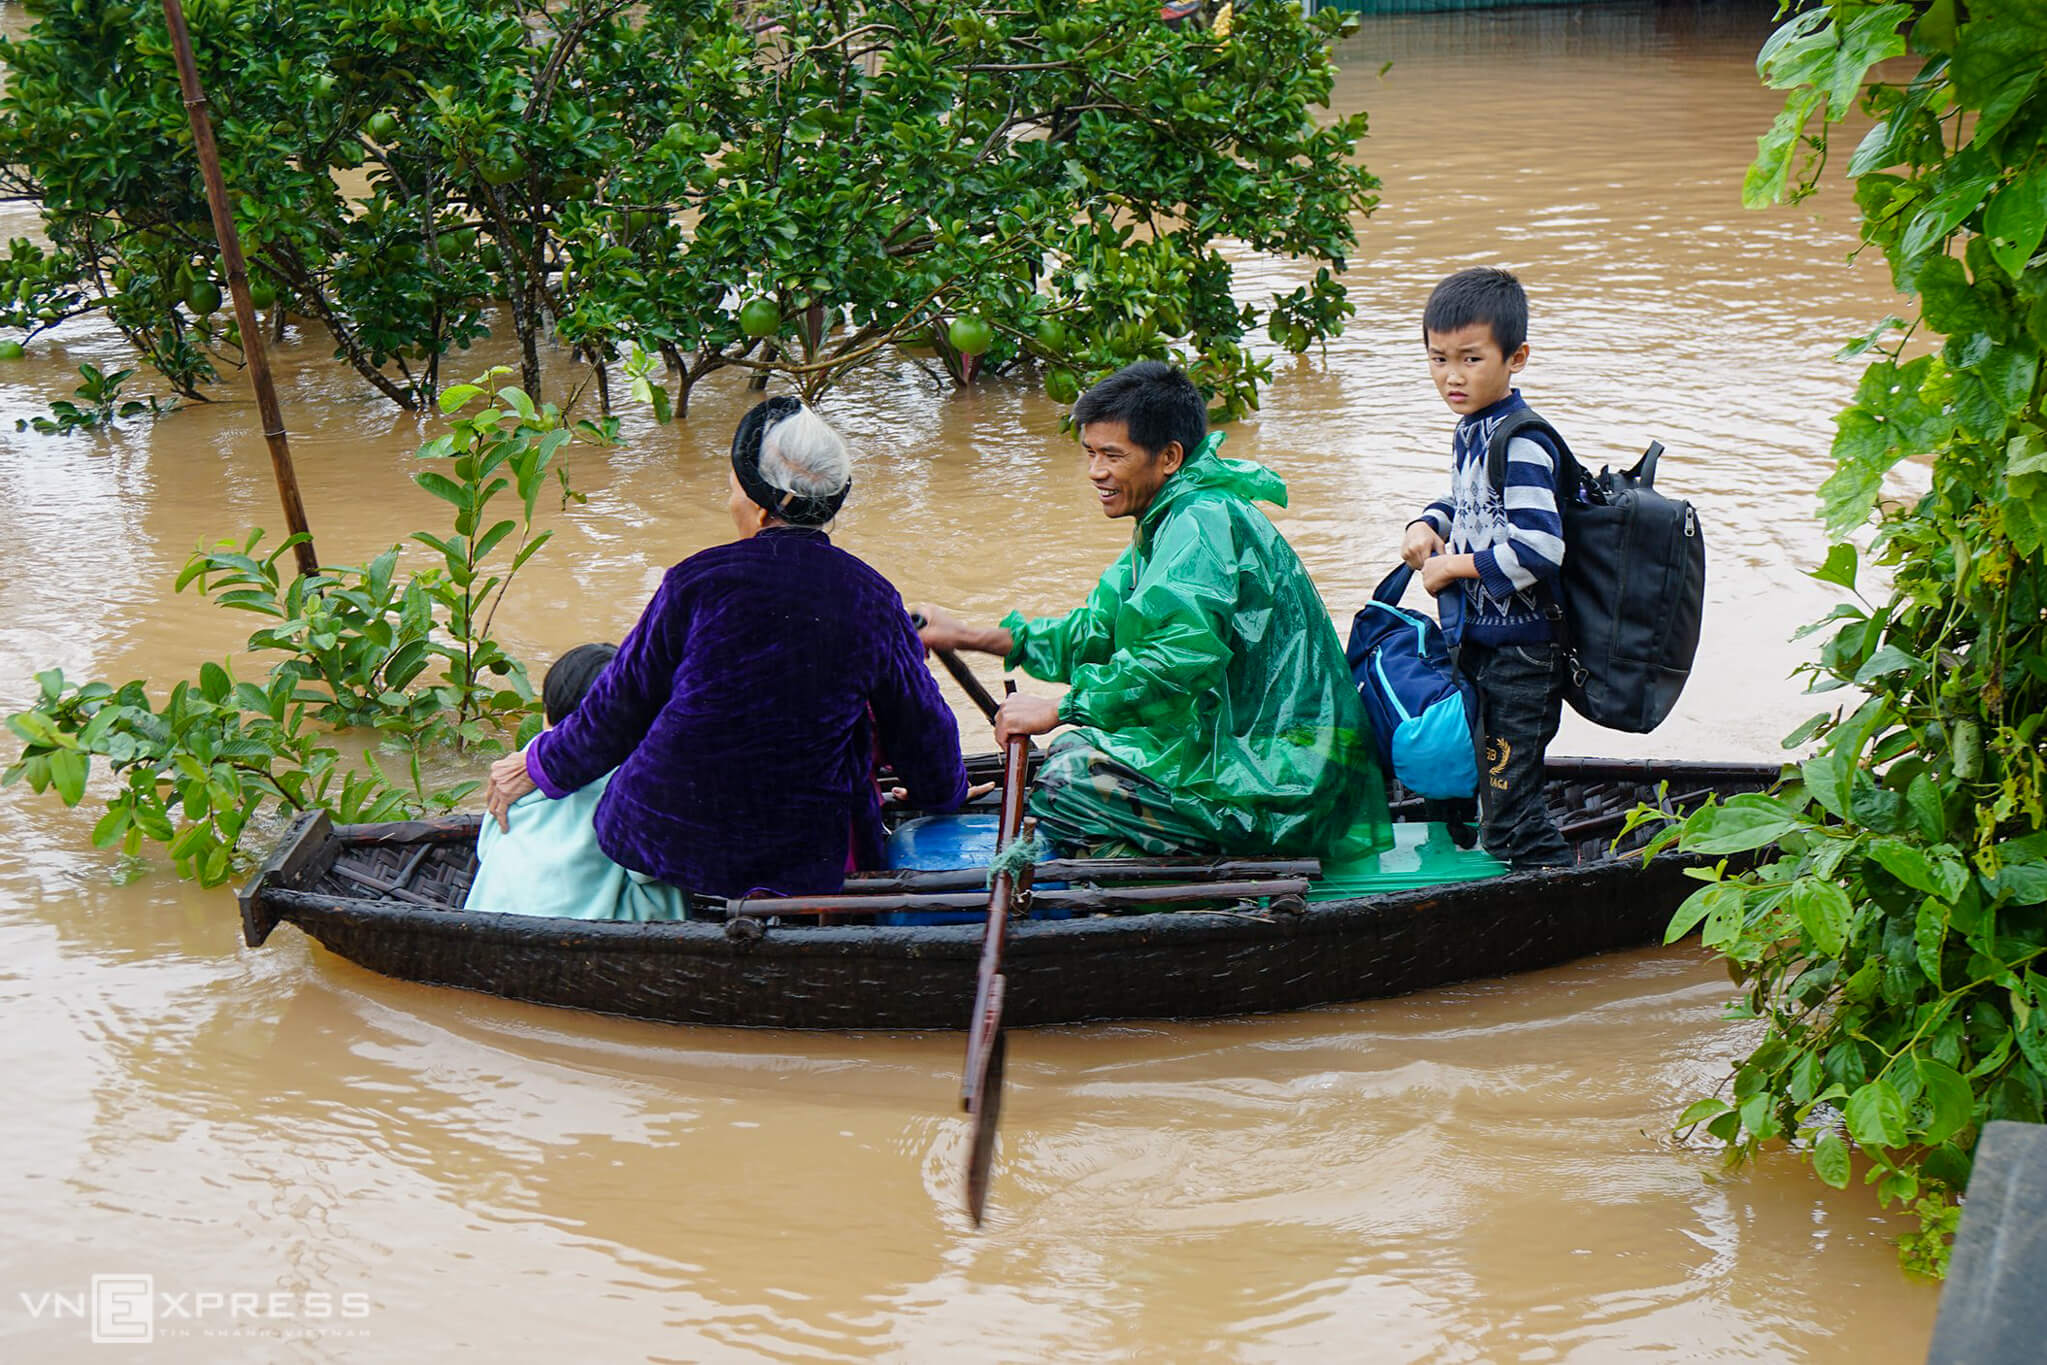 Central Vietnam scrambles to cope with worsening floods